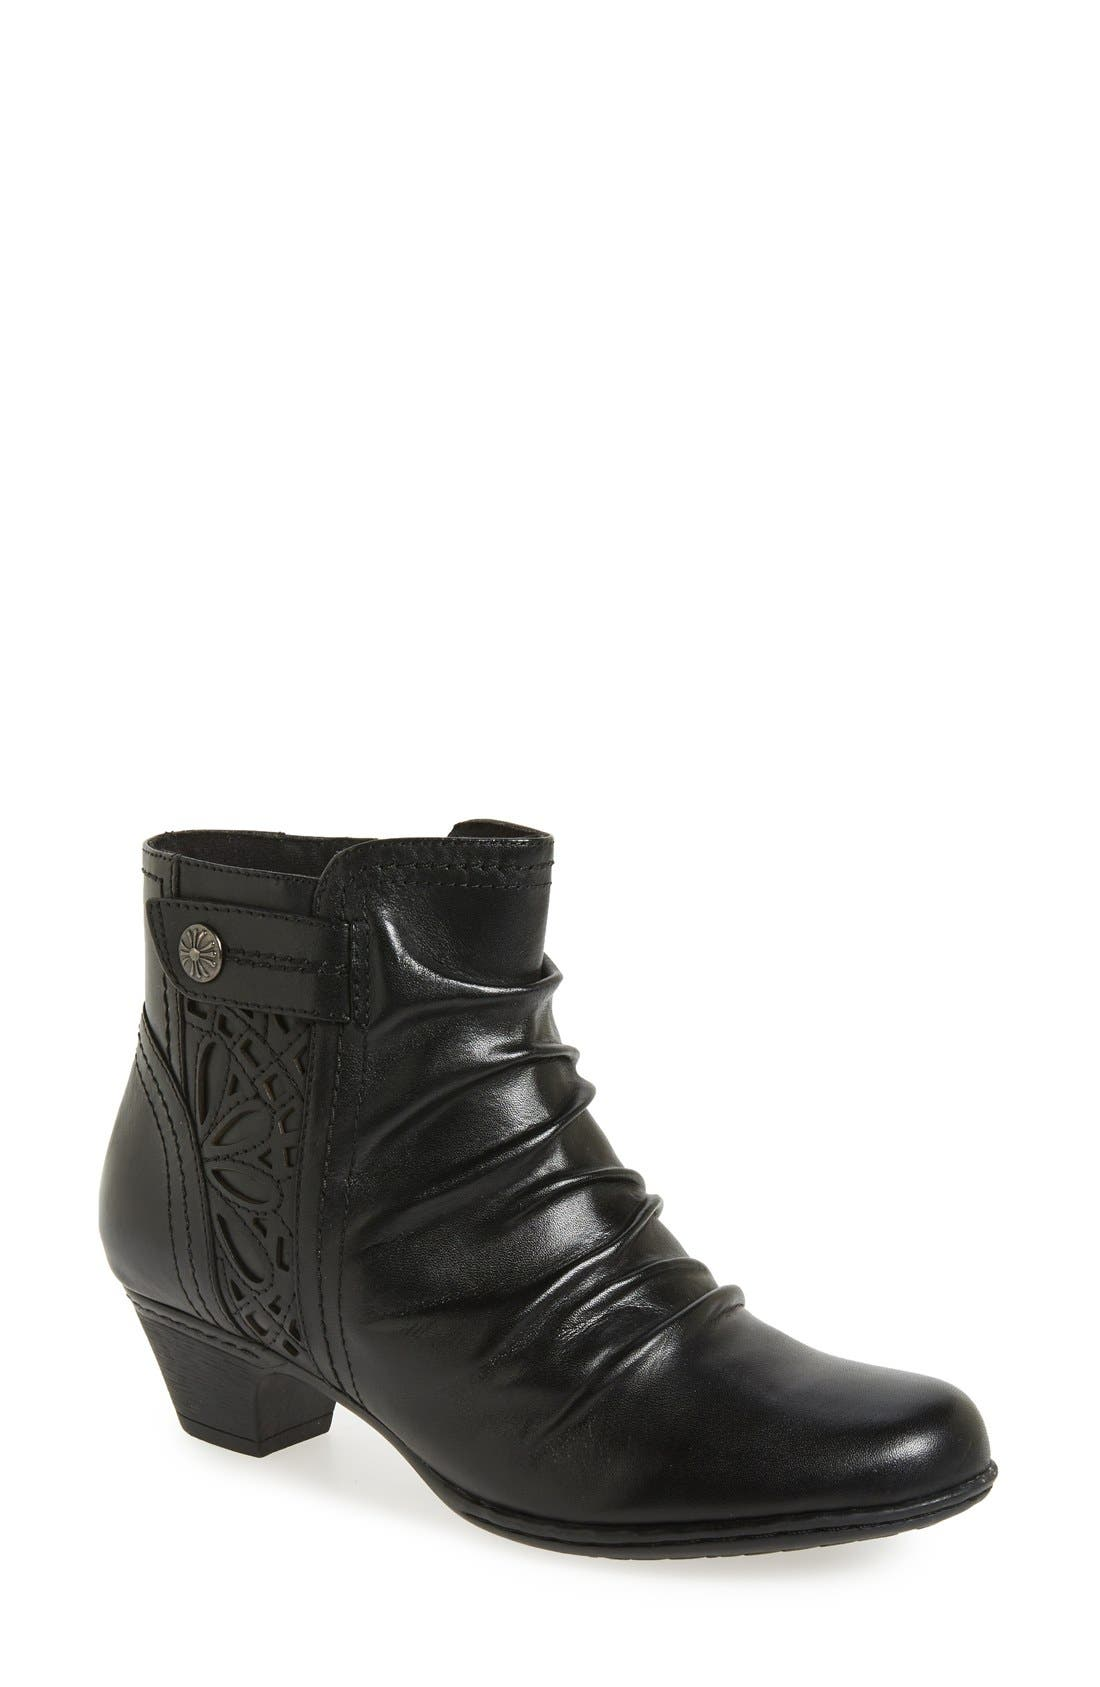 Alternate Image 1 Selected - Rockport Cobb Hill 'Abilene' Bootie (Women)